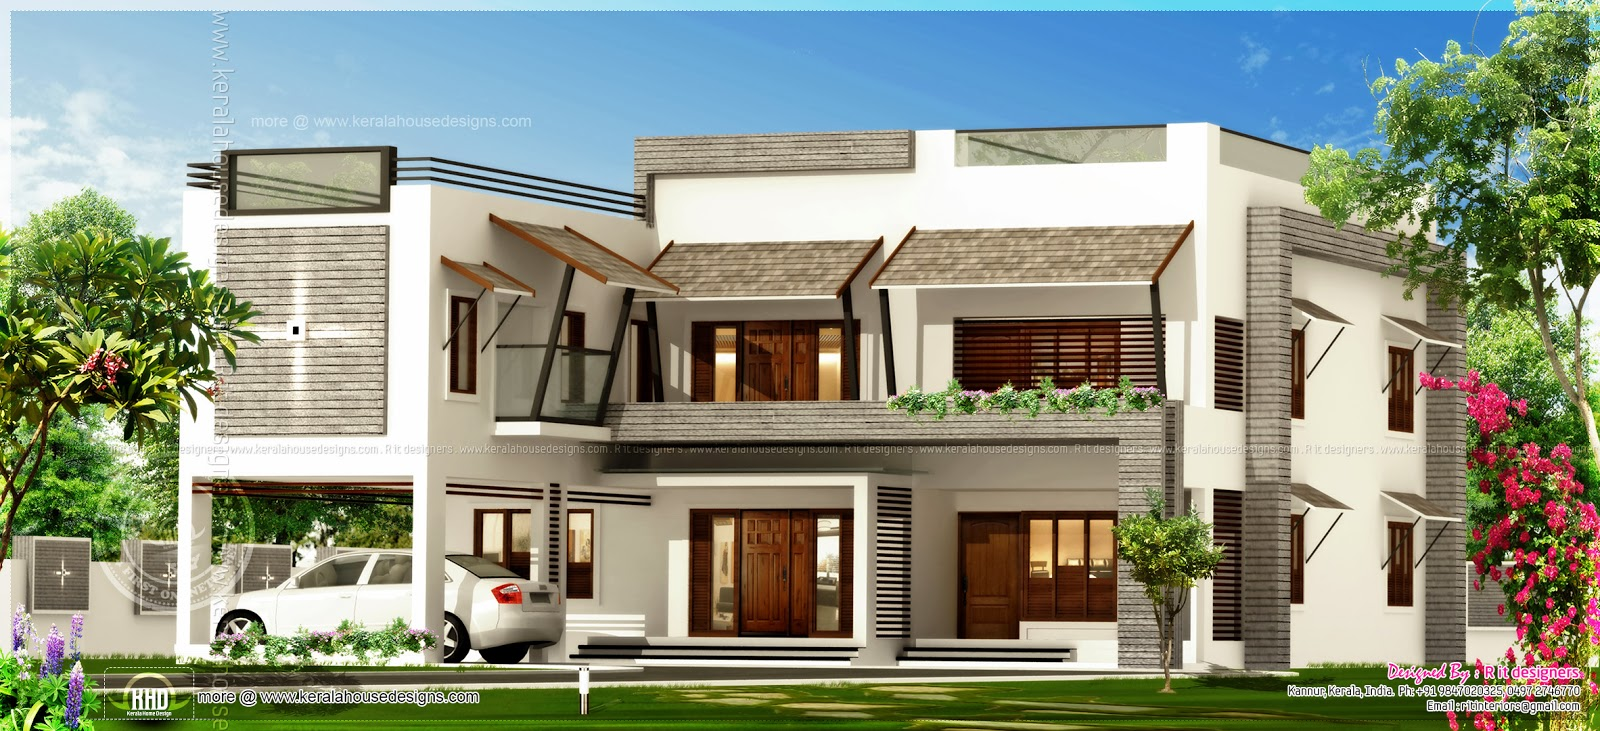 Luxury flat roof house in kannur kerala kerala home for Flat roof elevation